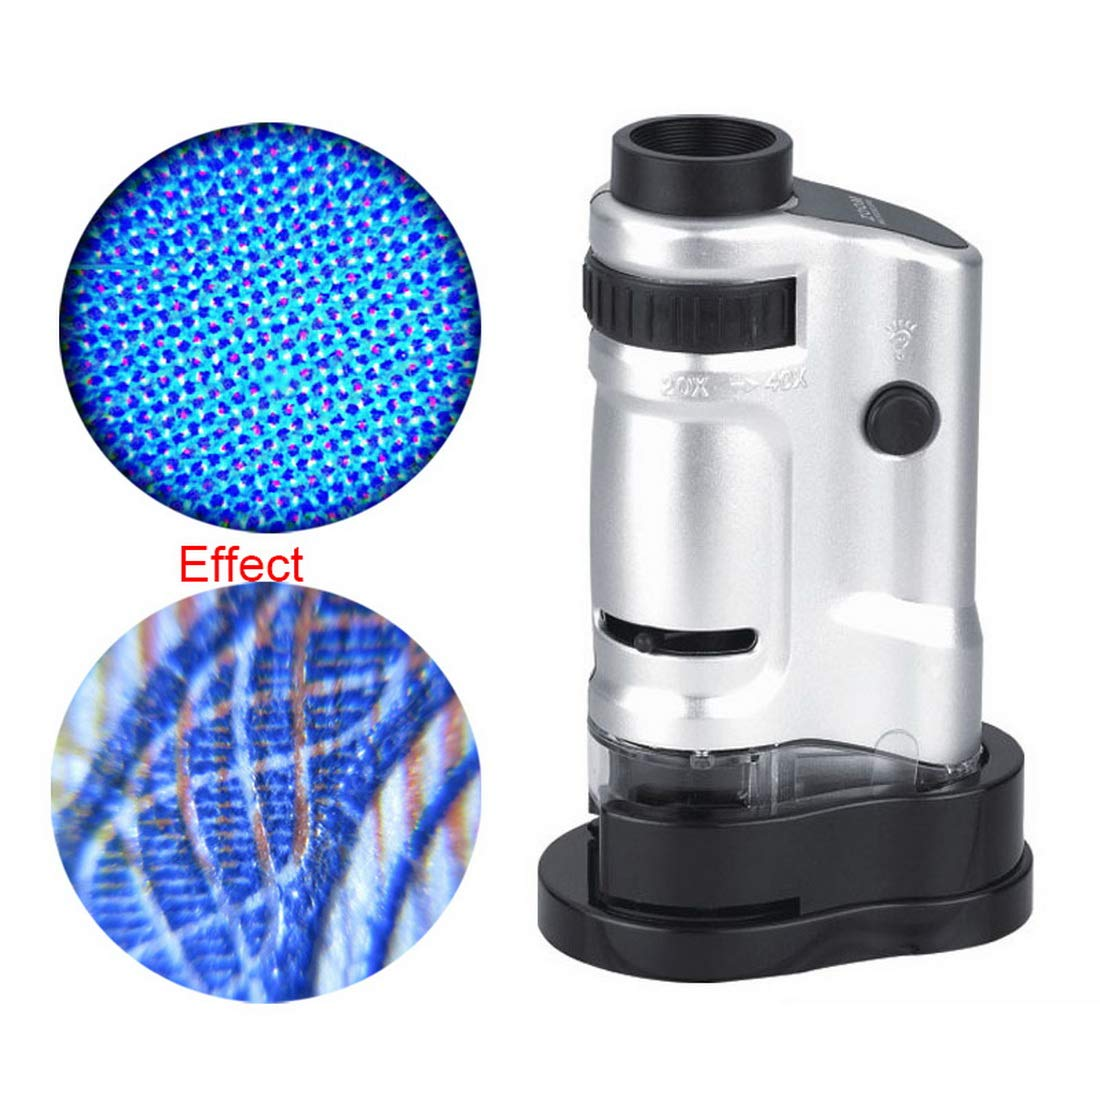 Loweryeah 20x-40x LED Lighted Pocket Microscope for Learning, Education and Exploring